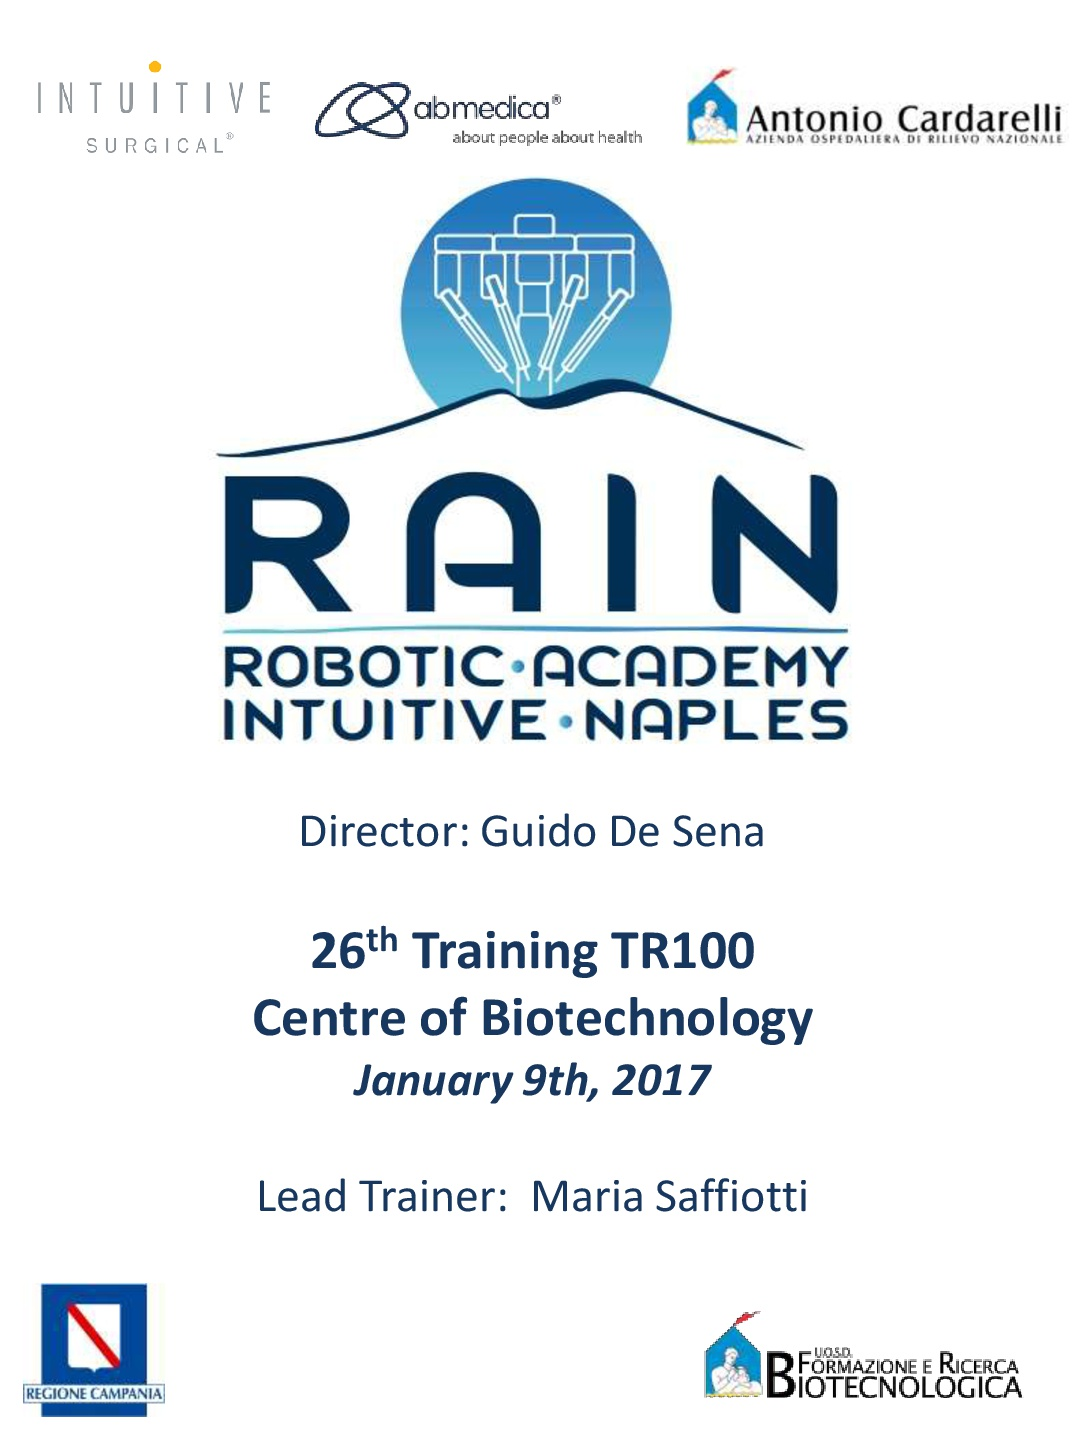 Robotic Academy Intuitive Naples (RAIN) – 26th Training TR100